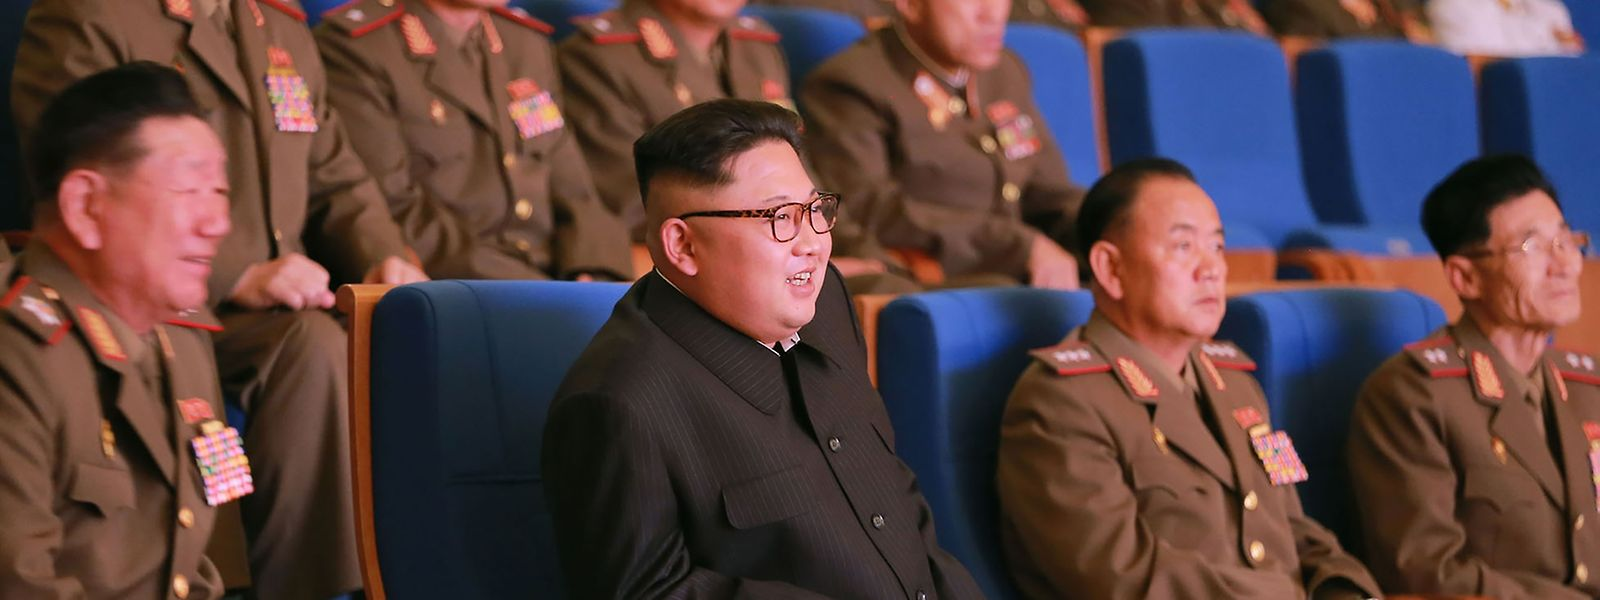 This undated picture released from North Korea's official Korean Central News Agency (KCNA) on July 16, 2016 shows North Korean leader Kim Jong-Un (C) watching an art performance staged by the amateur art groups of the Korean People's Army (KPA) units in Pyongyang.